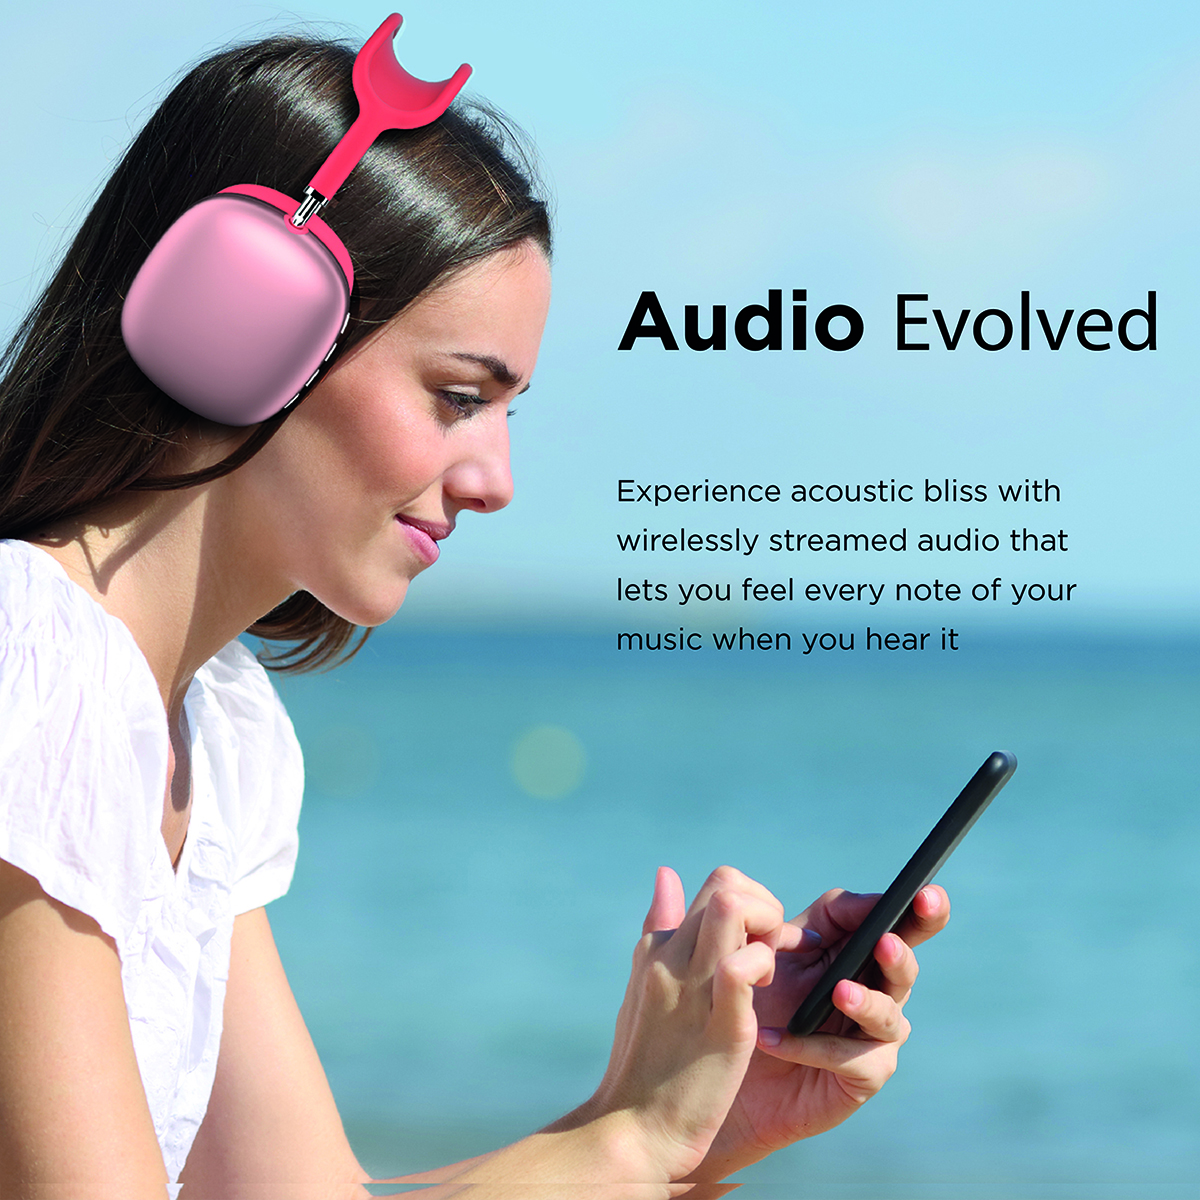 Promate Wireless Bluetooth Headphones, Ergonomic Over-Ear Adjustable Bluetooth 5.0 Headset with Mic, FM Radio, TF Card Slot and Wired Mode 3.5mm Jack for iPhone 12, Gym, Travel, Office, AirBeat Red